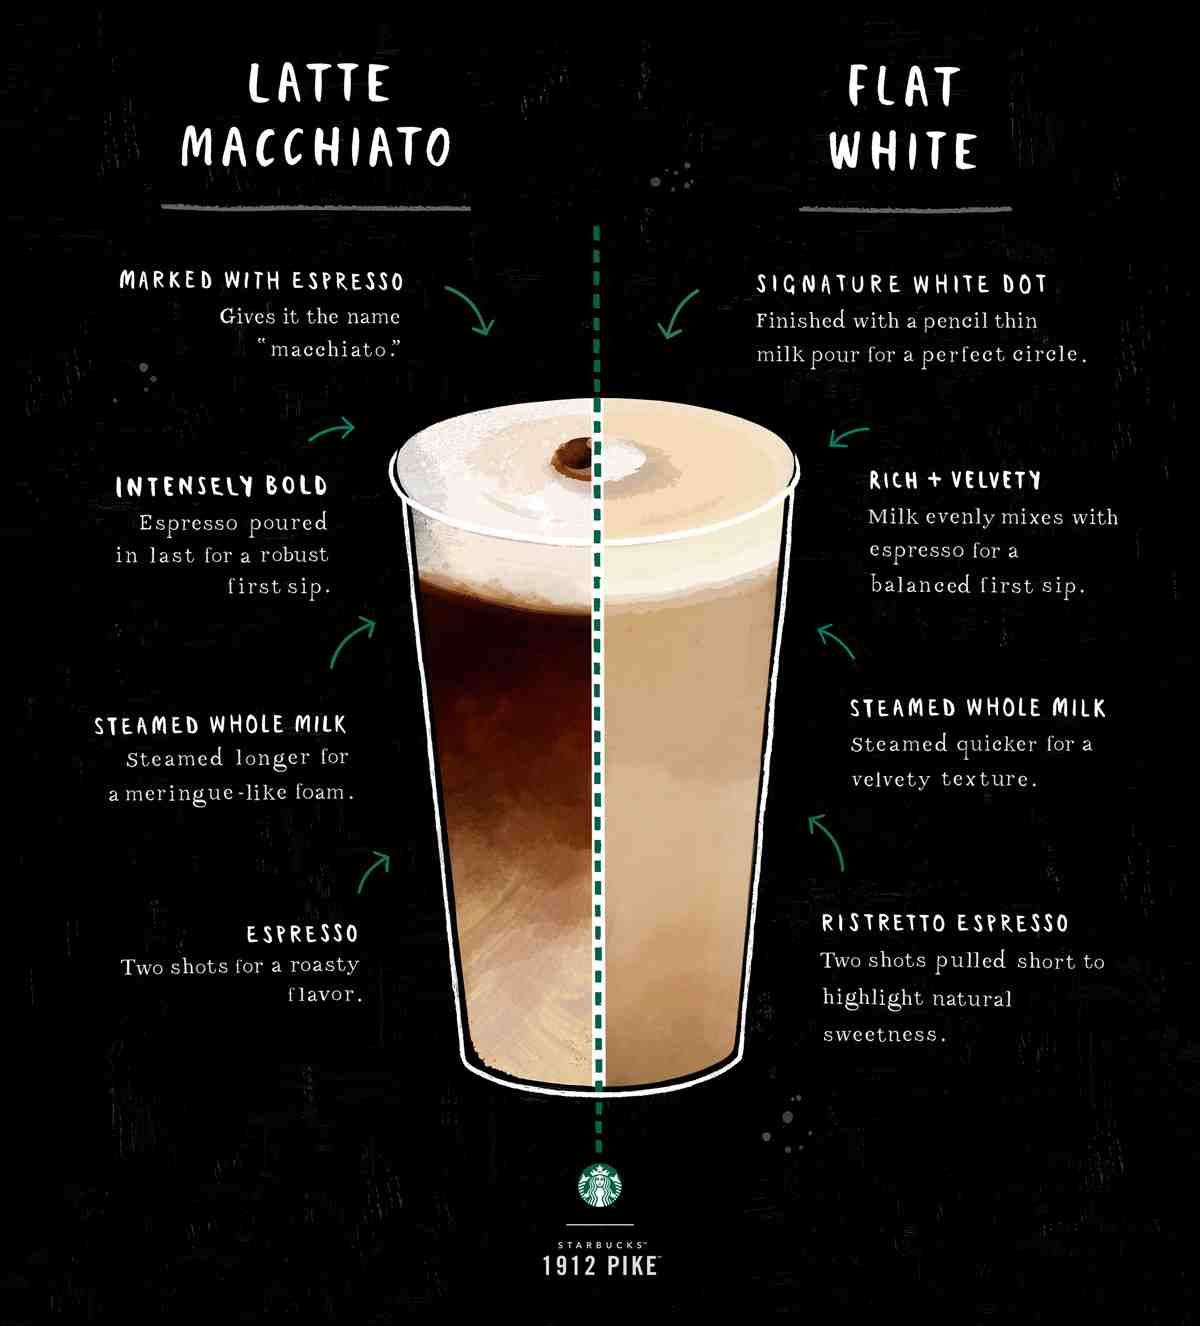 hight resolution of latte macchiato vs the flat white here s the breakdown and the differences